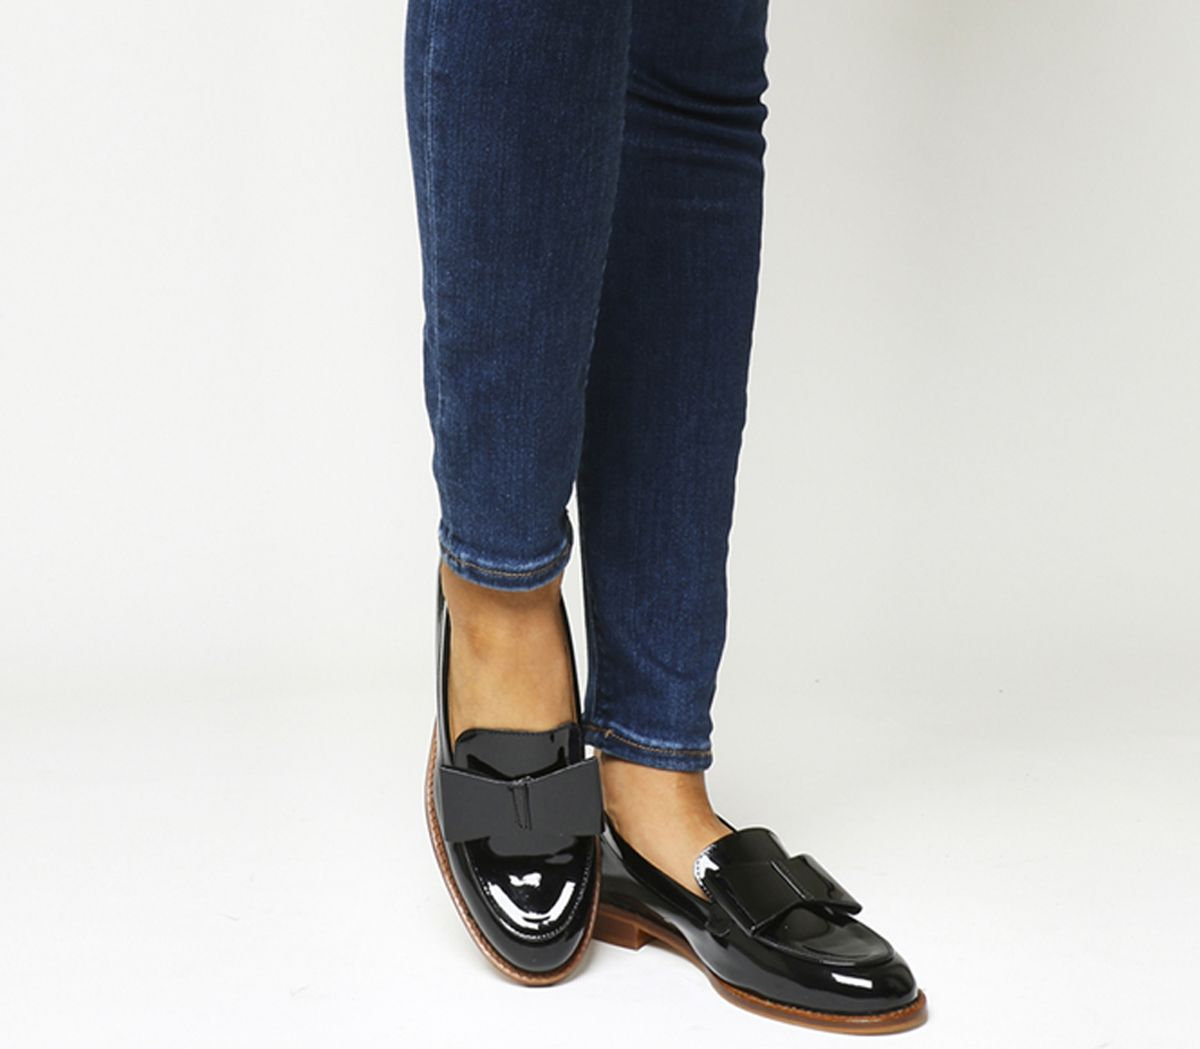 4e8c9a3c7d09 Office Present Bow Loafers Black Patent Leather - Flats